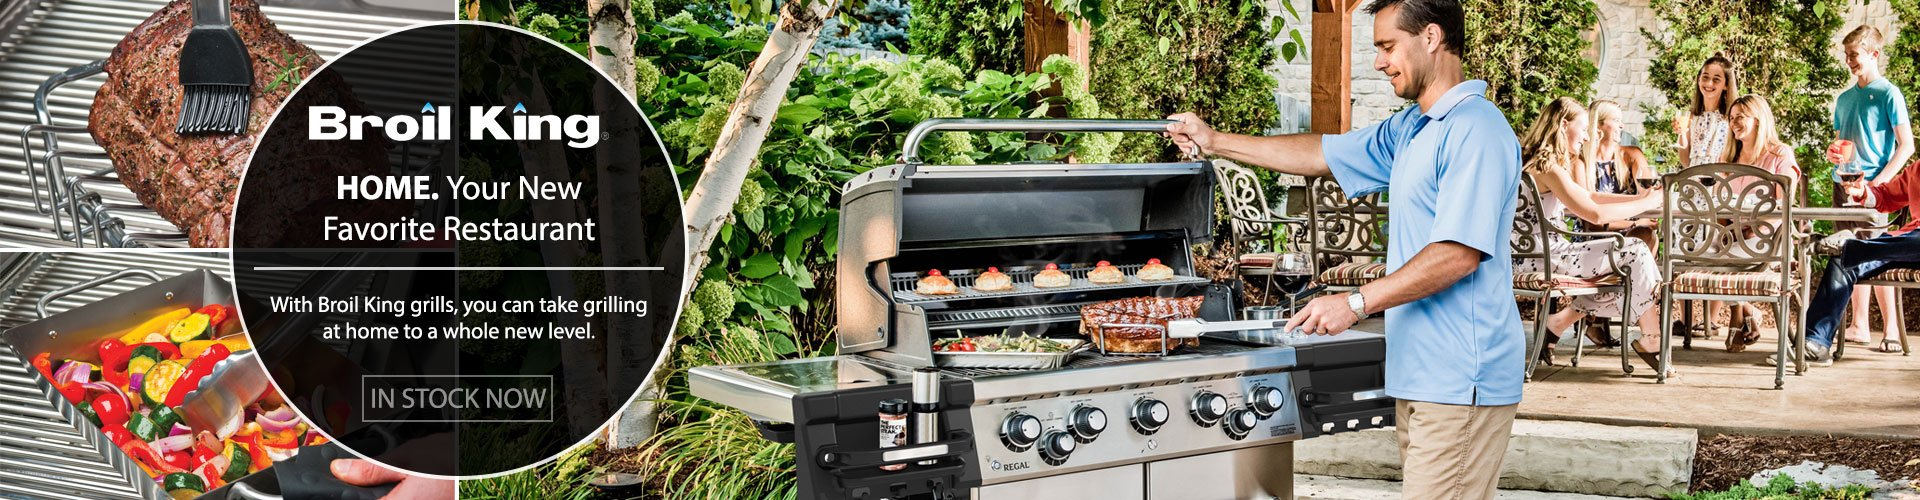 With Broil King grills, you can take grilling at home to a whole new level.